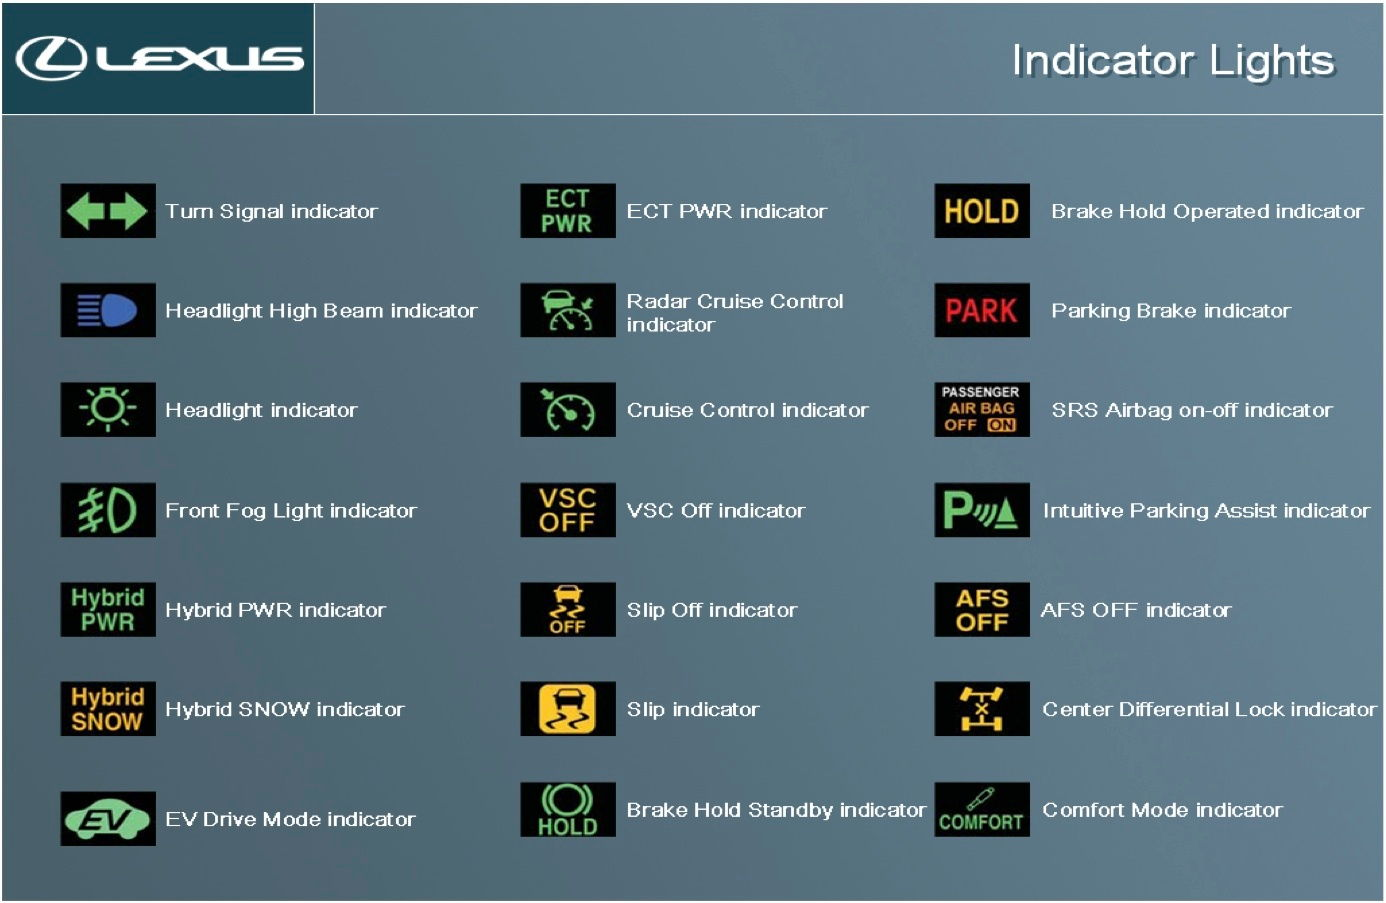 Car Lights Meanings >> Buying advise 2010 LS460 - ClubLexus - Lexus Forum Discussion